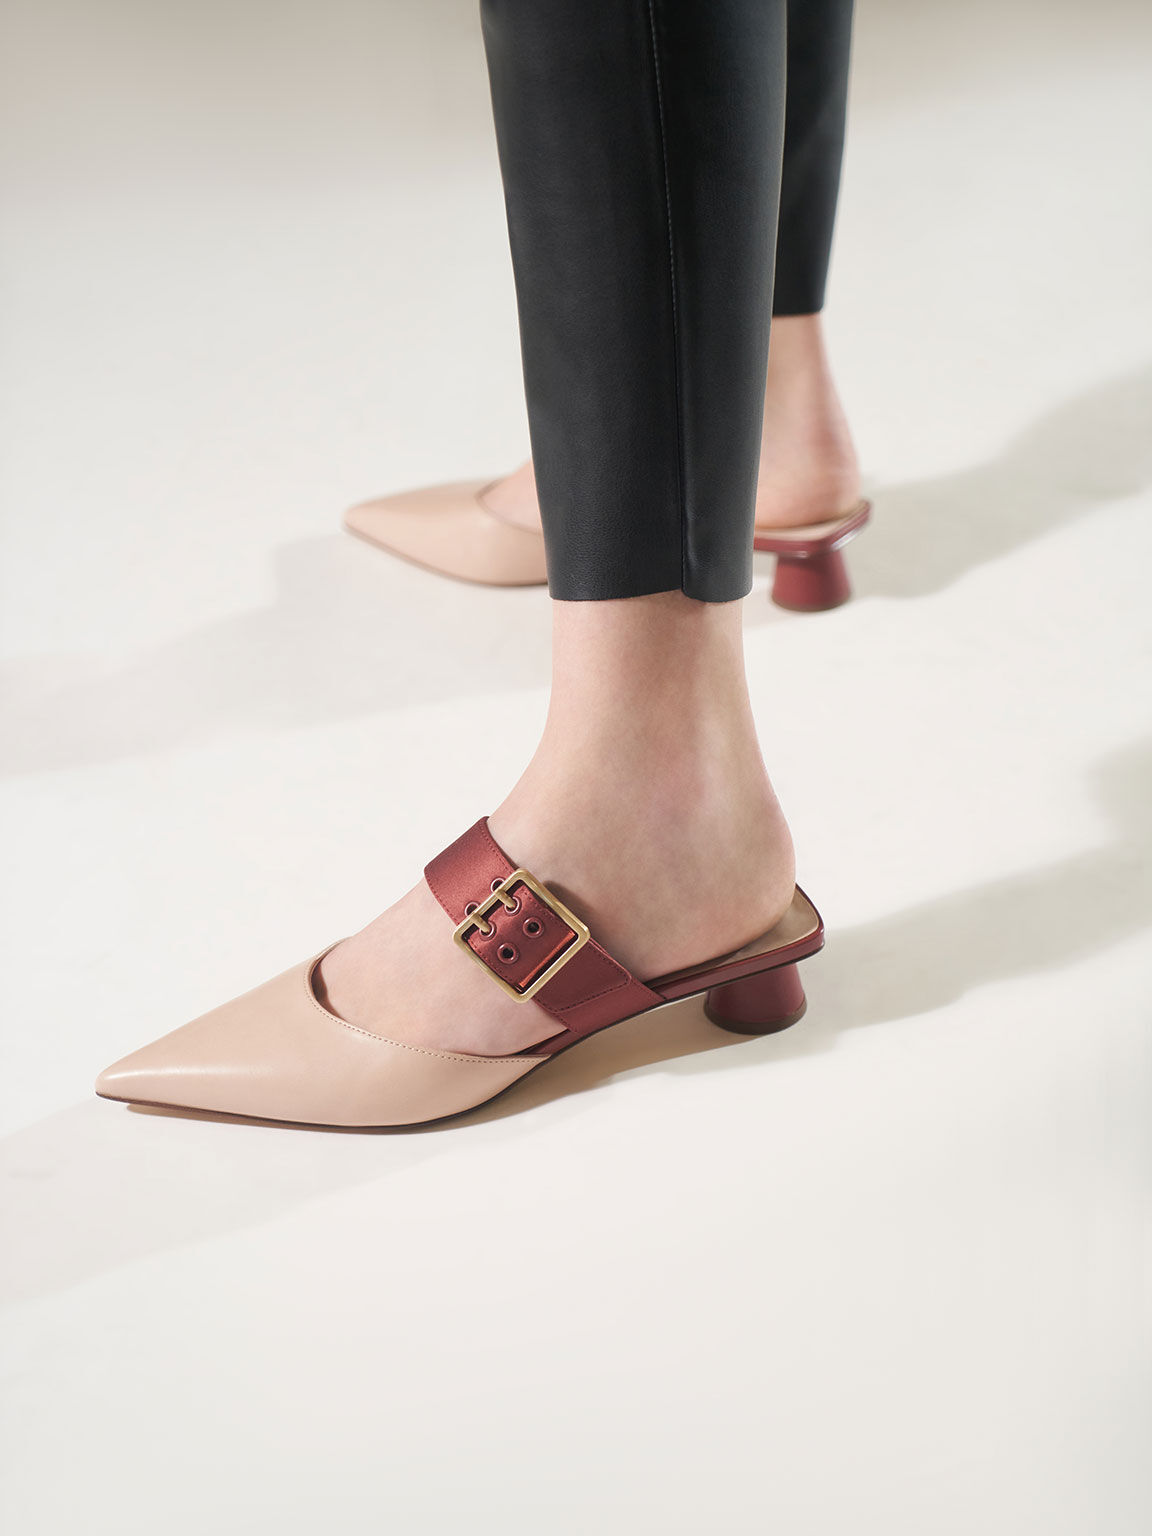 Satin Grommet Buckle Mules, Brick, hi-res